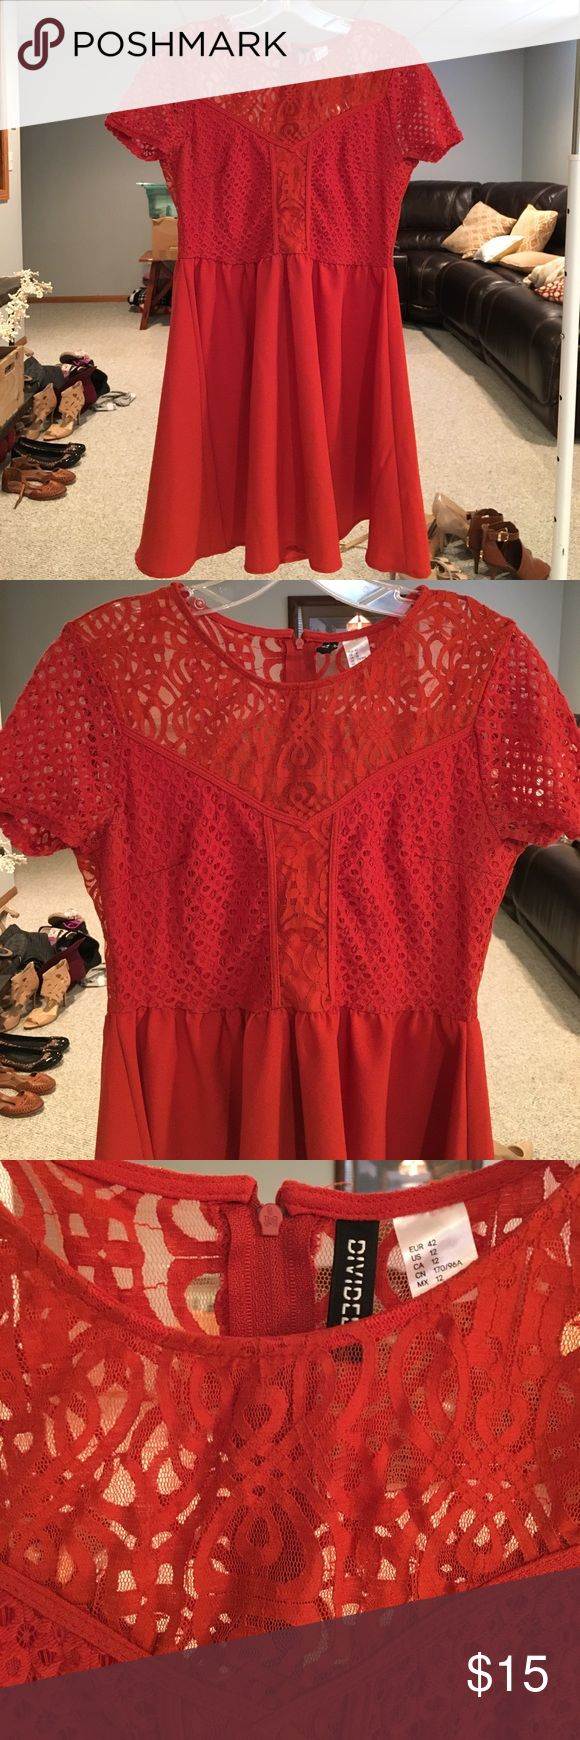 Intricate orange lace dress Lace on top, flown skirt on the bottom. Actually a burnt orange color (lighting causes it to look red). Make me an offer! Runs small: would say it fits size 8-10 Divided Dresses